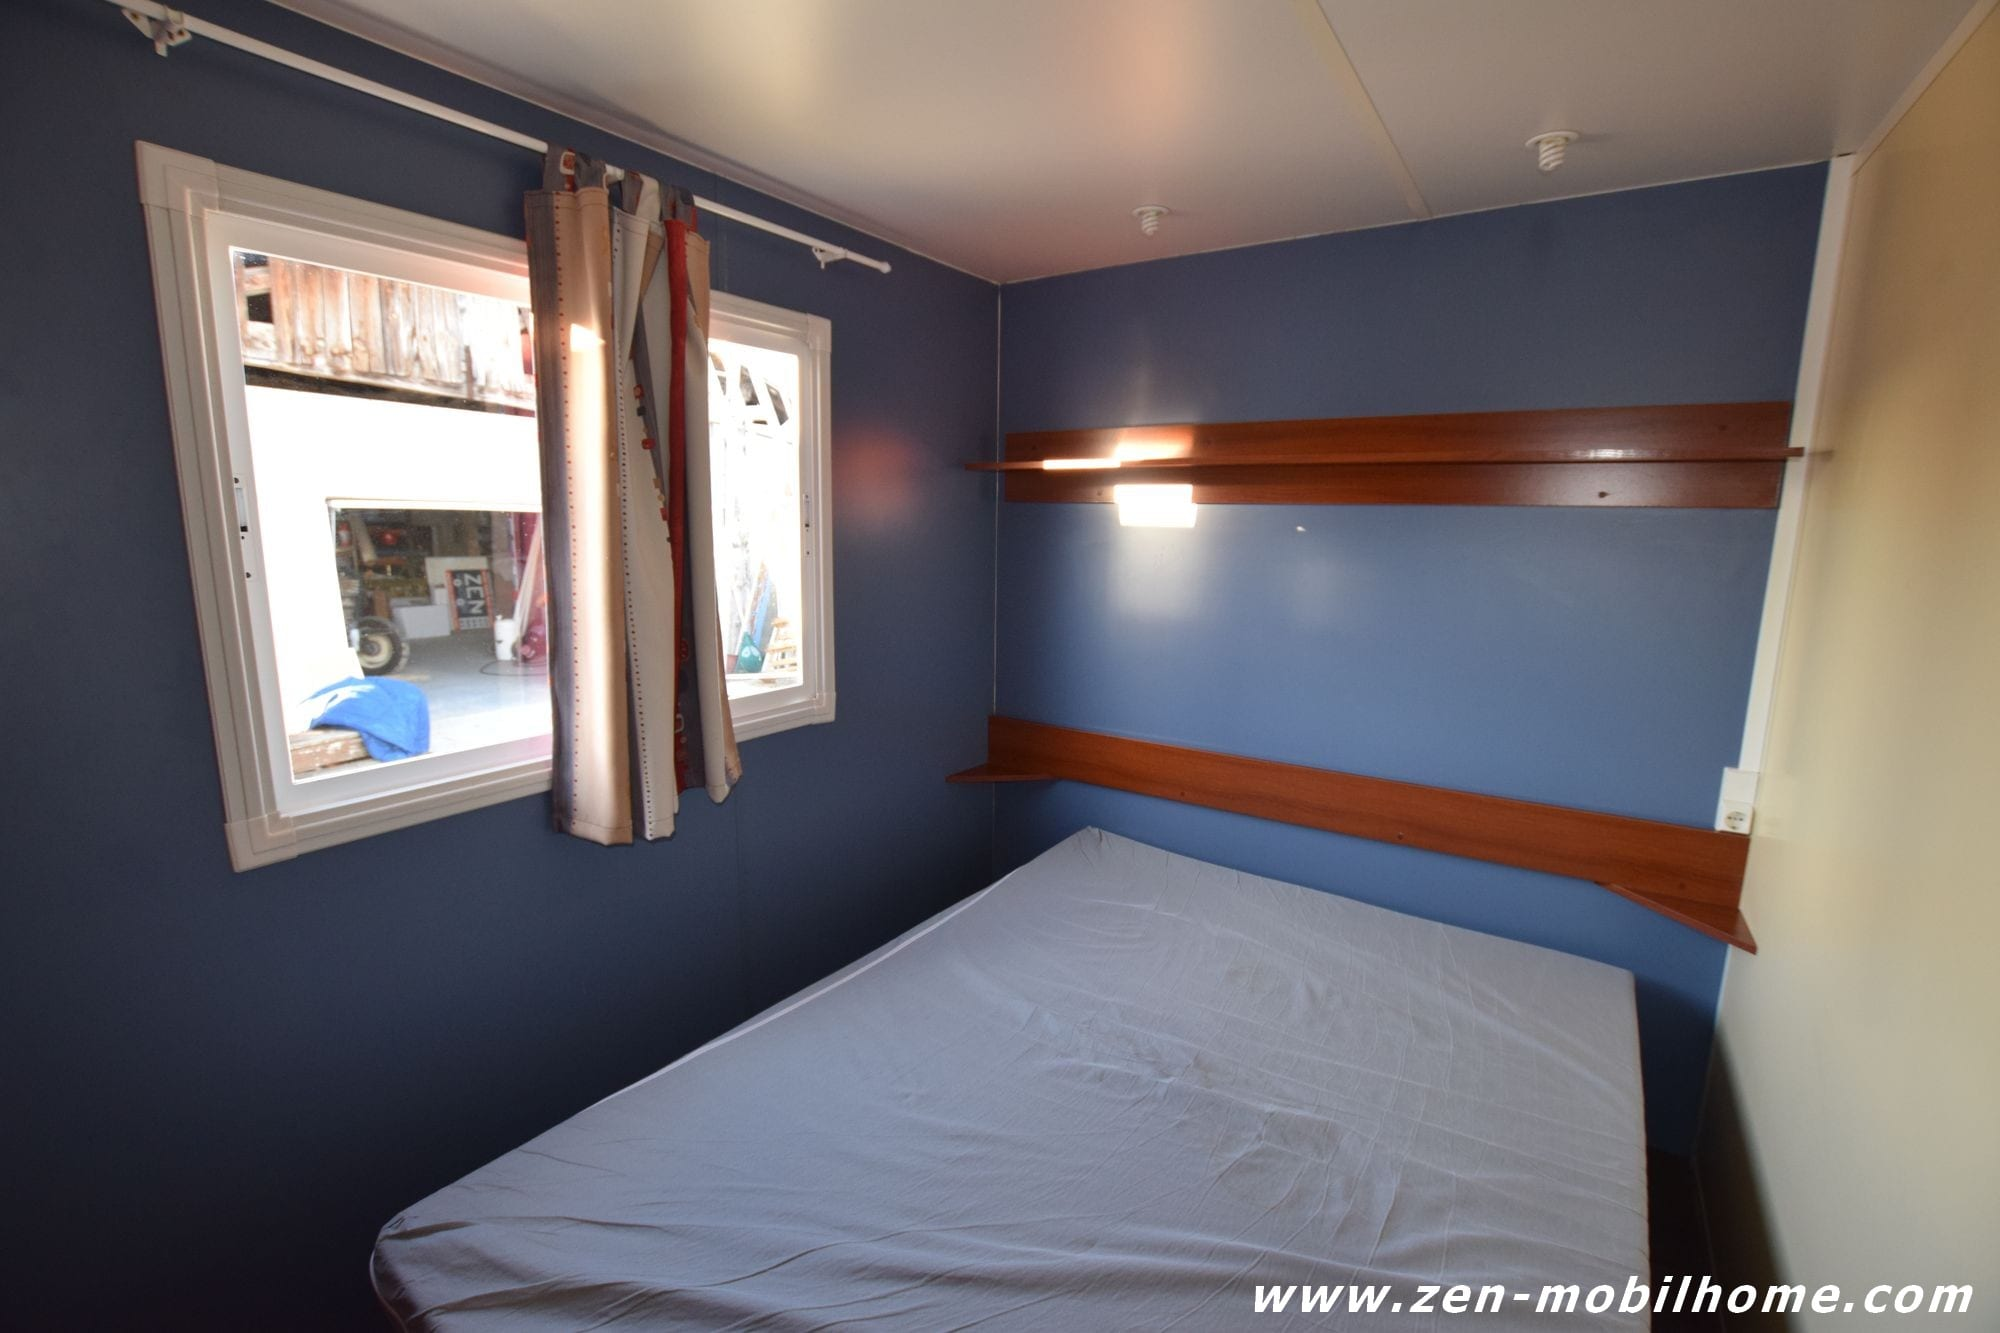 Sun Roller Pacif - 2002 - Mobil home occasion - 4 500€ - Zen Mobil homes